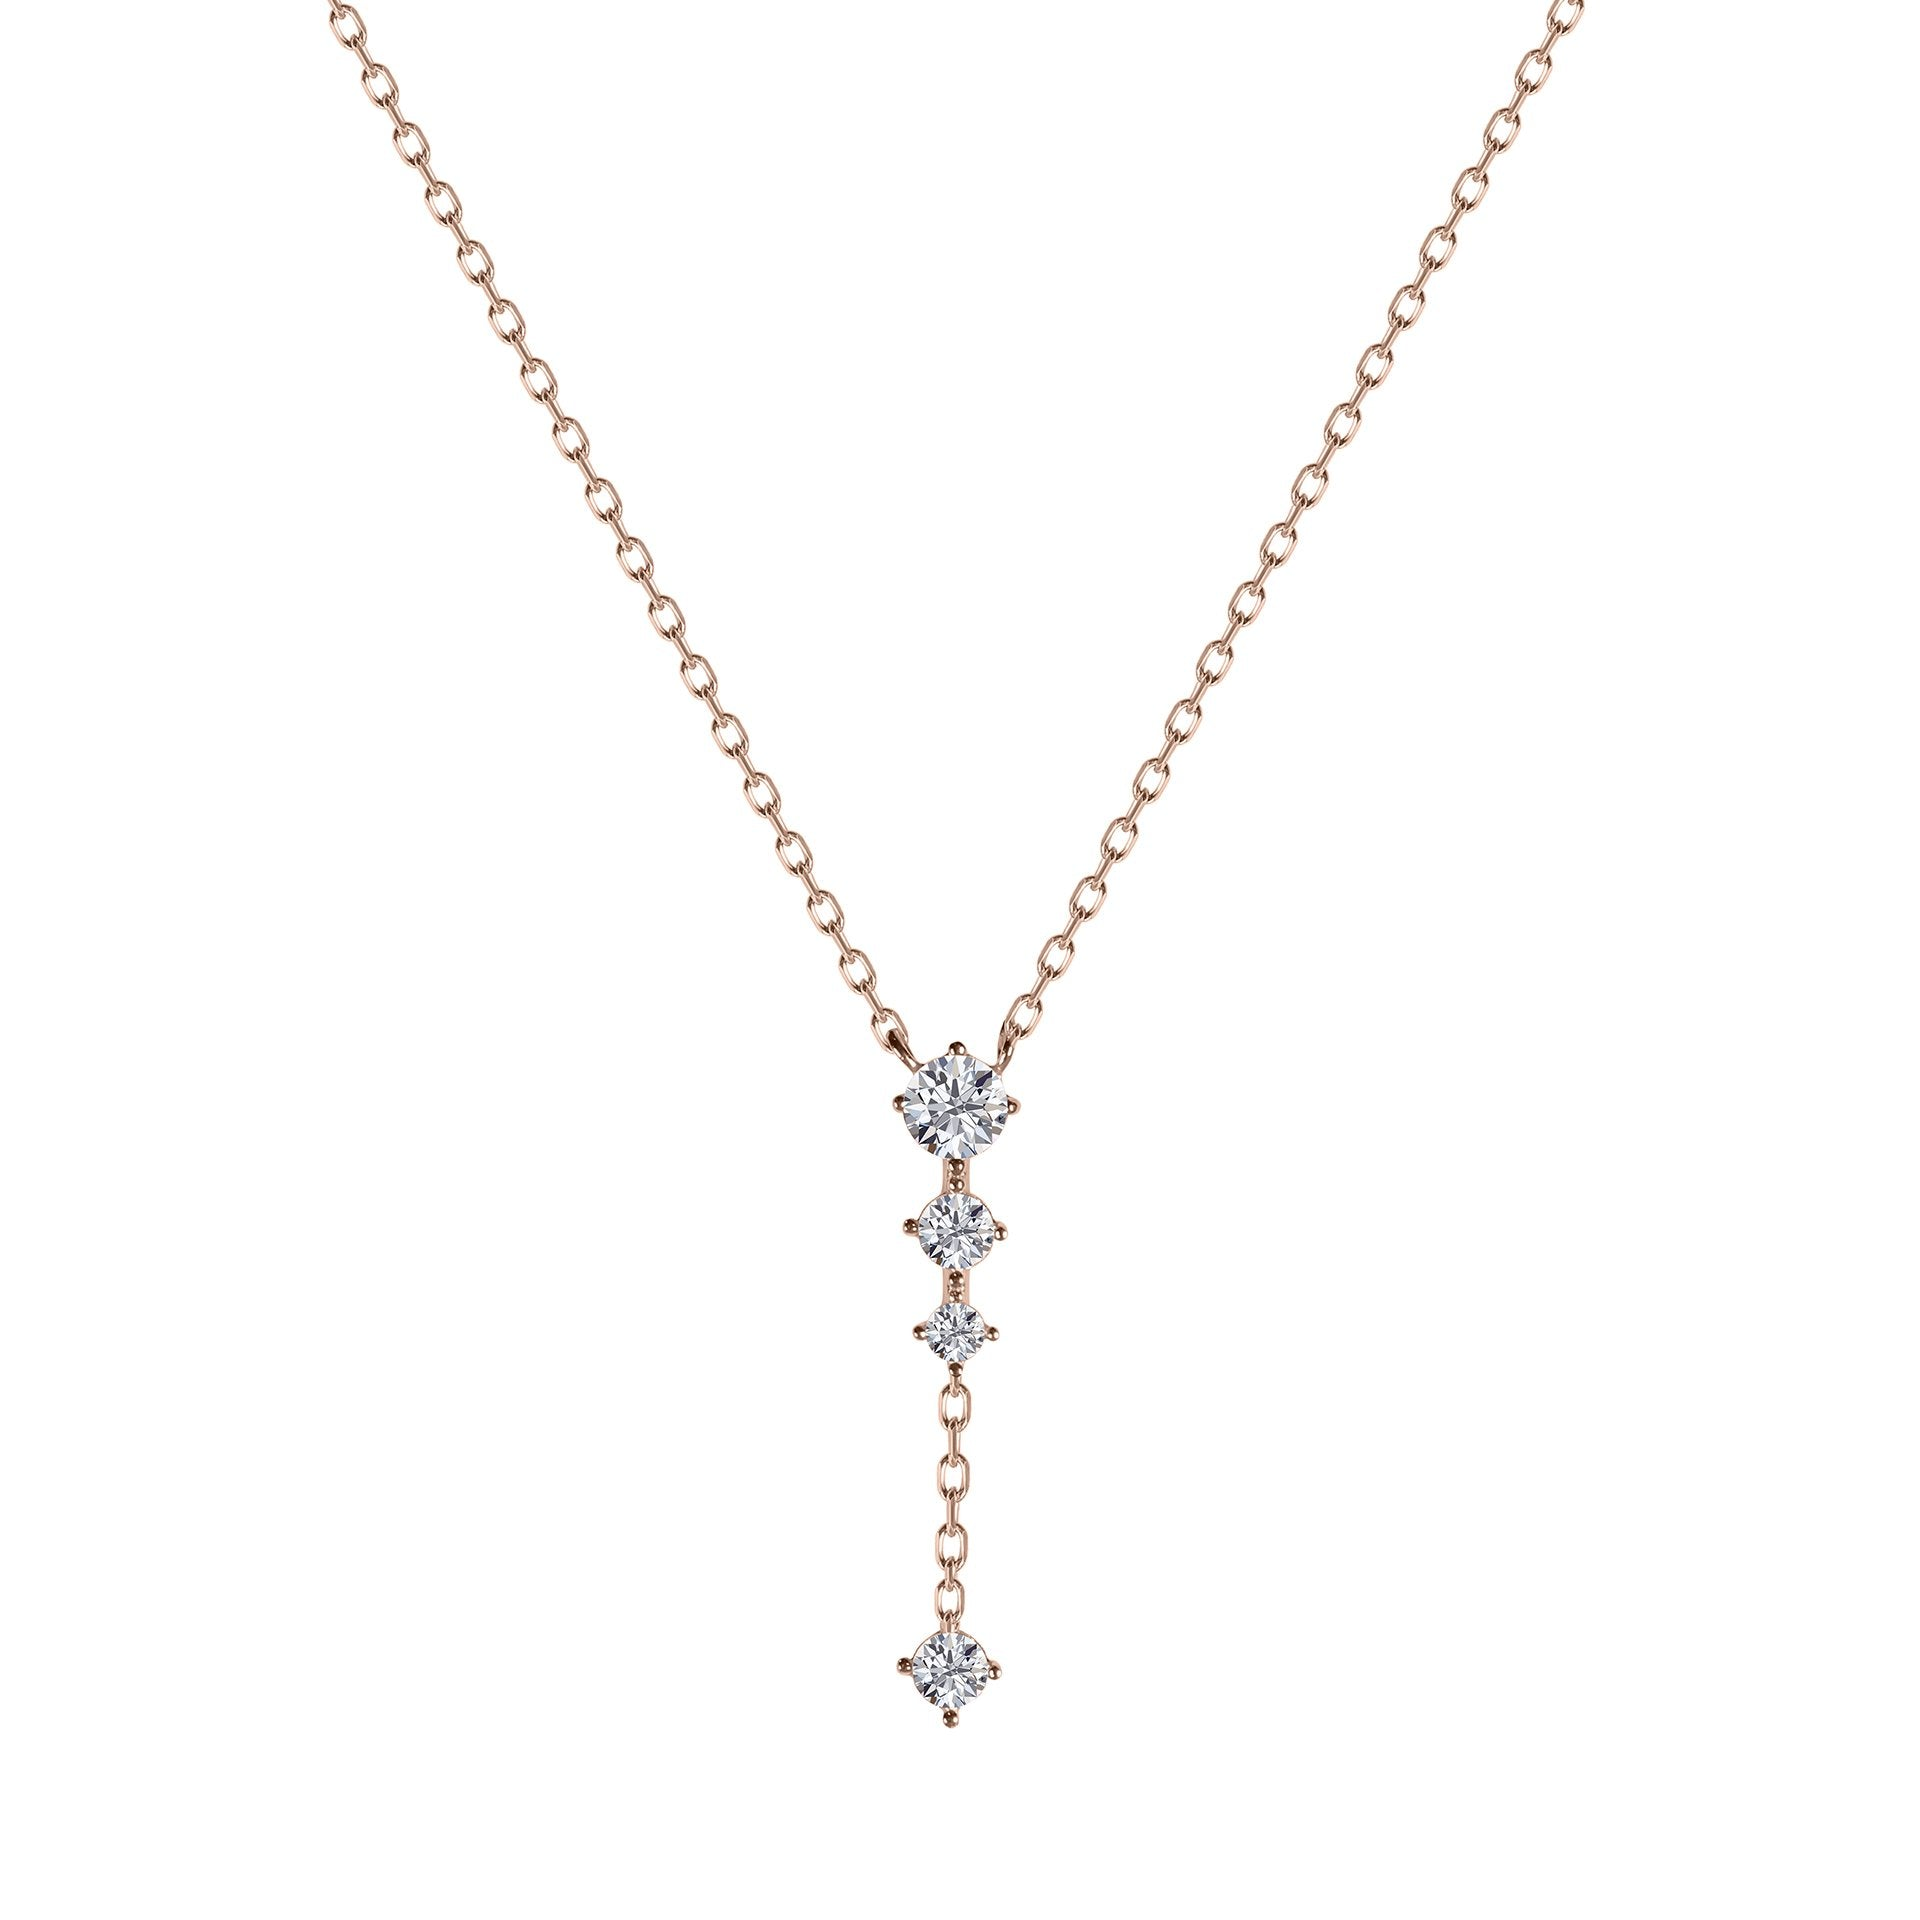 Jordyn Necklace in Rose Gold